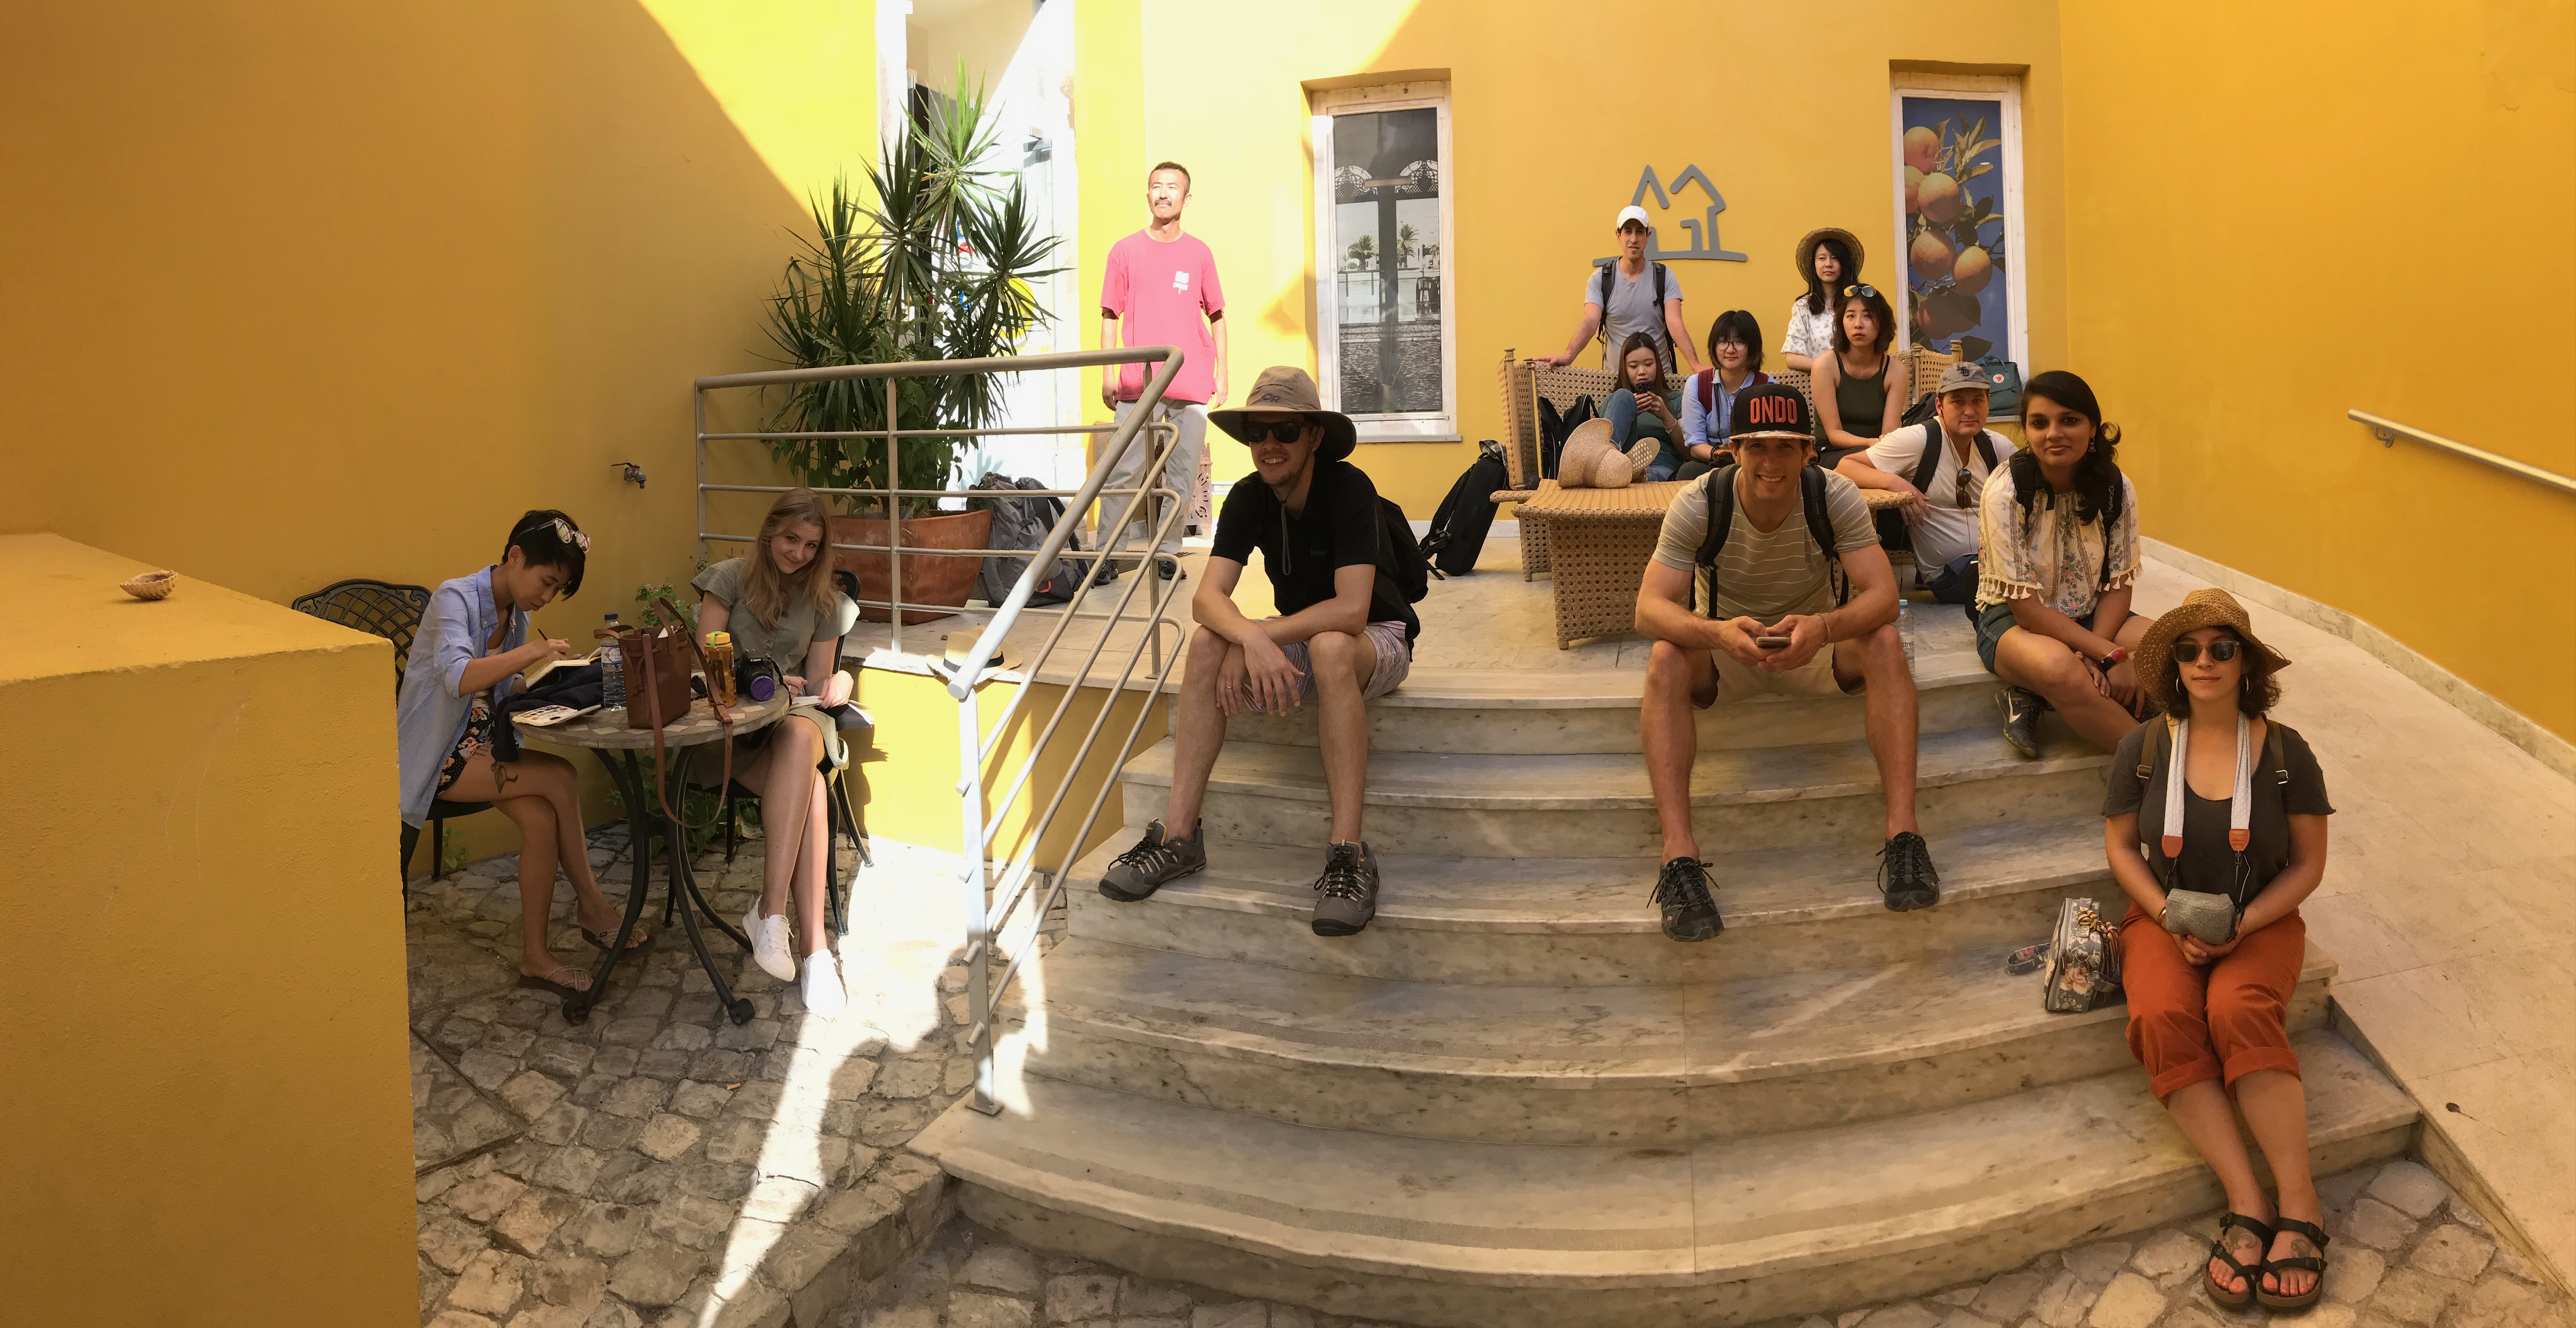 Group of students sit on steps